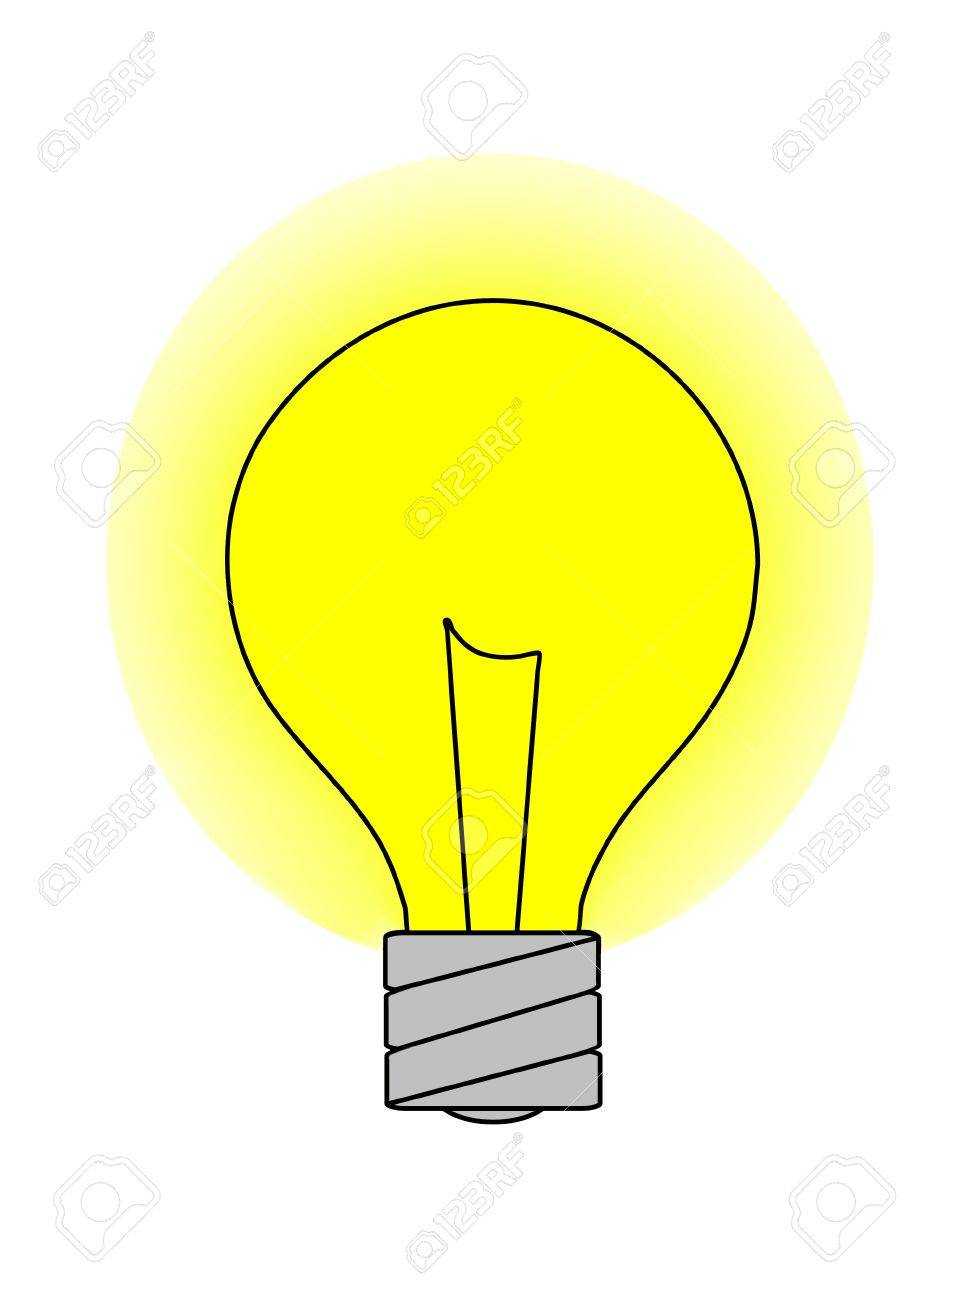 A Graphic Of A Light Bulb With A Yellow Glow Isolated On A Solid